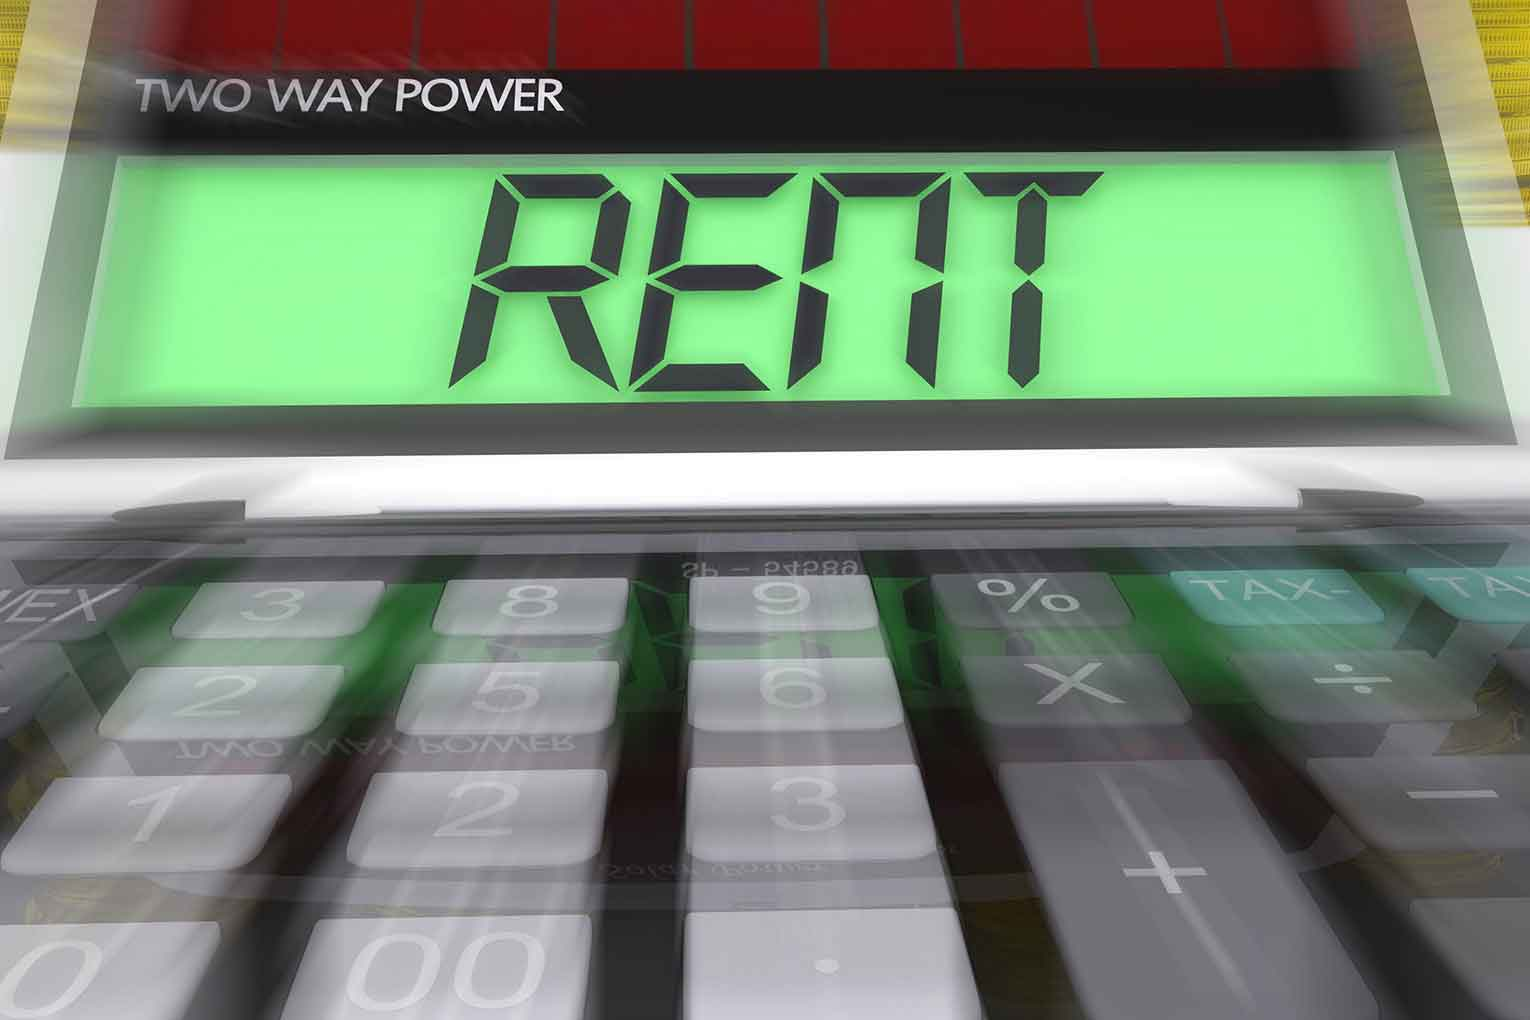 Rent-to-own firm agrees £2.1m redress scheme